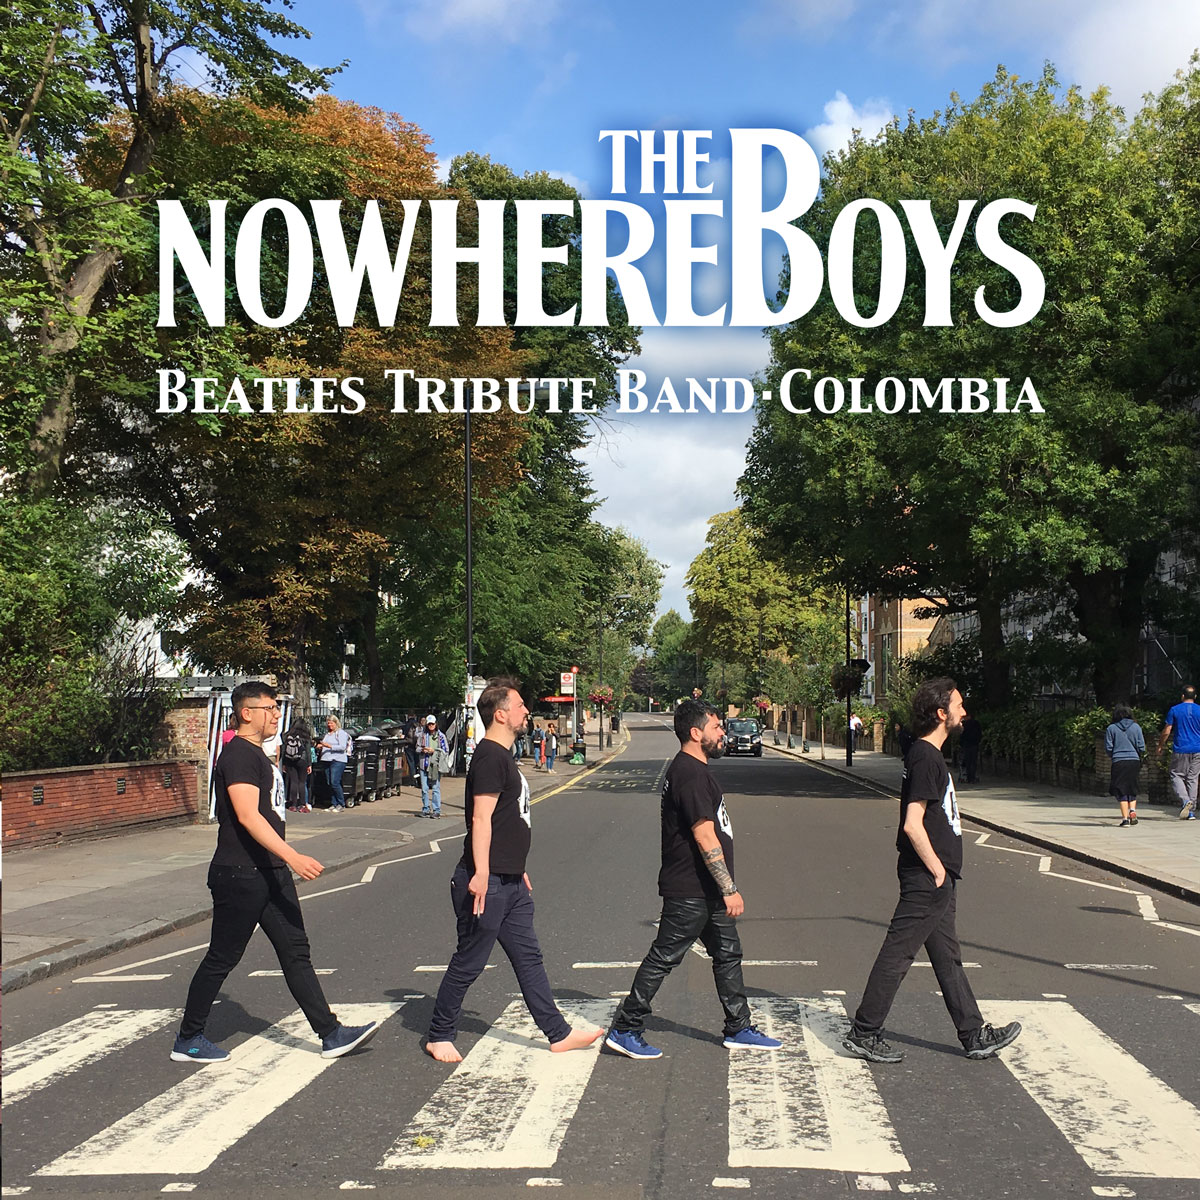 NowhereBoys abbey road